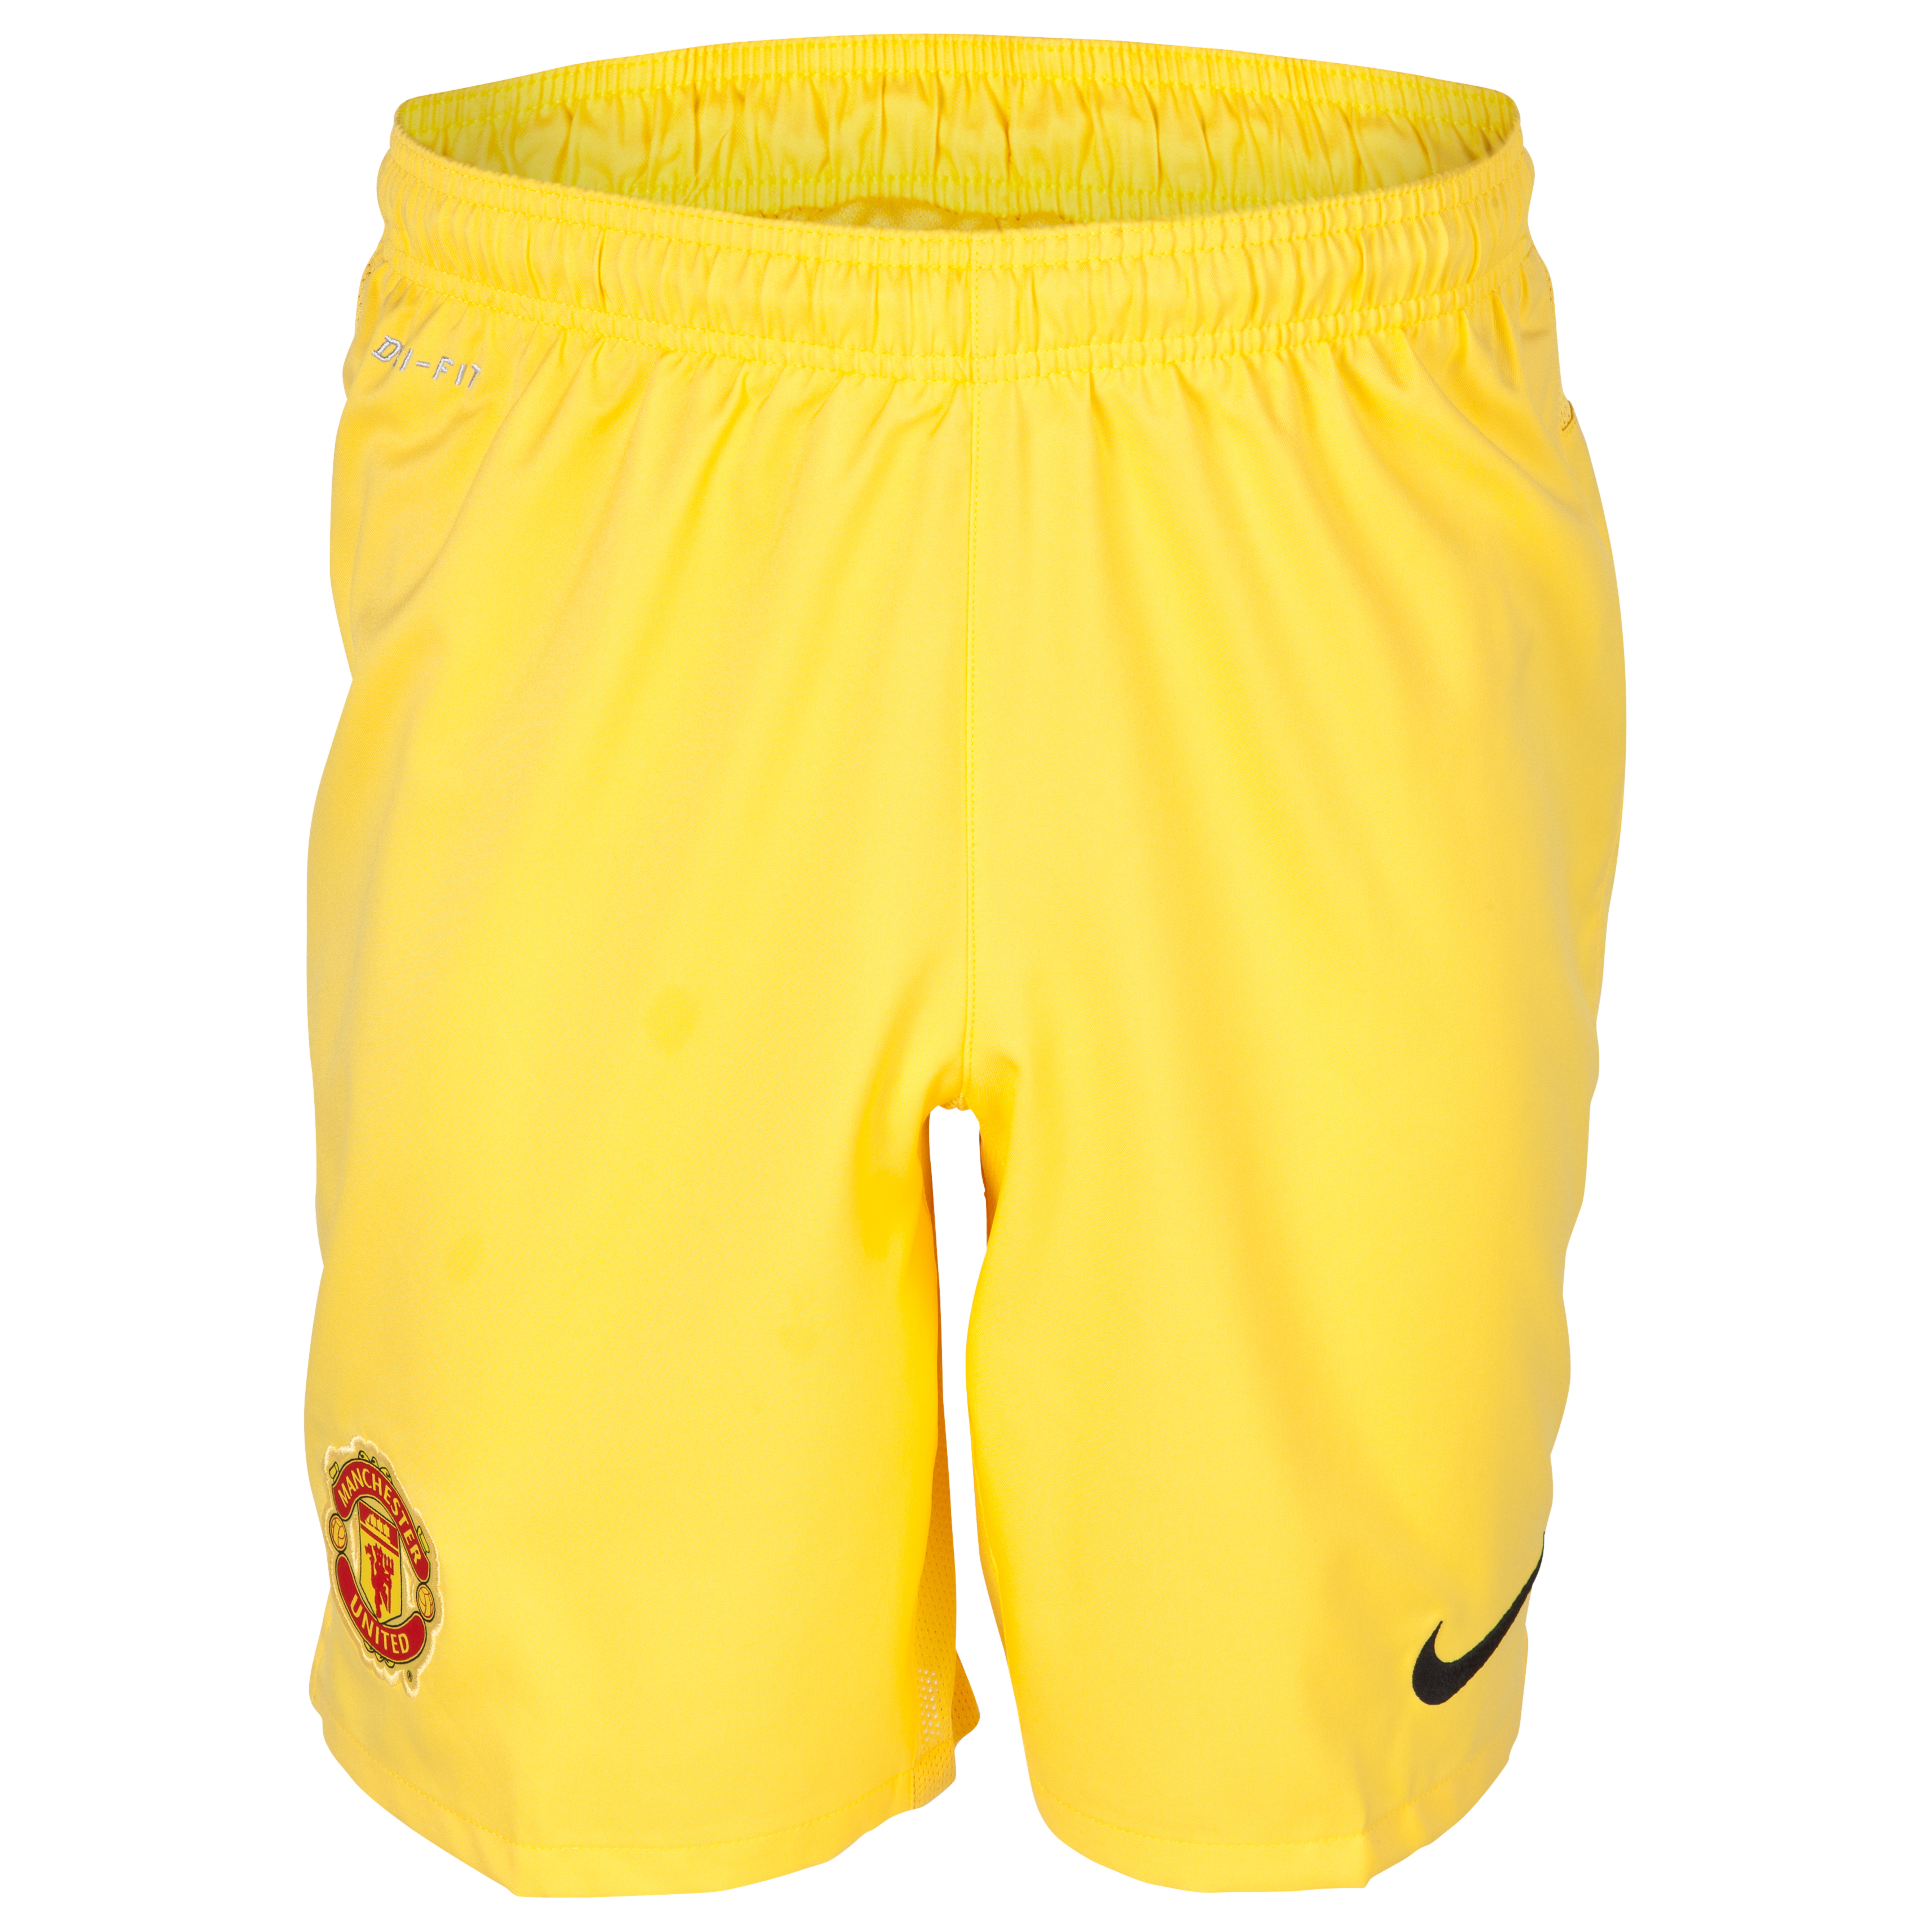 Manchester United Change Goalkeeper Shorts 2013/14